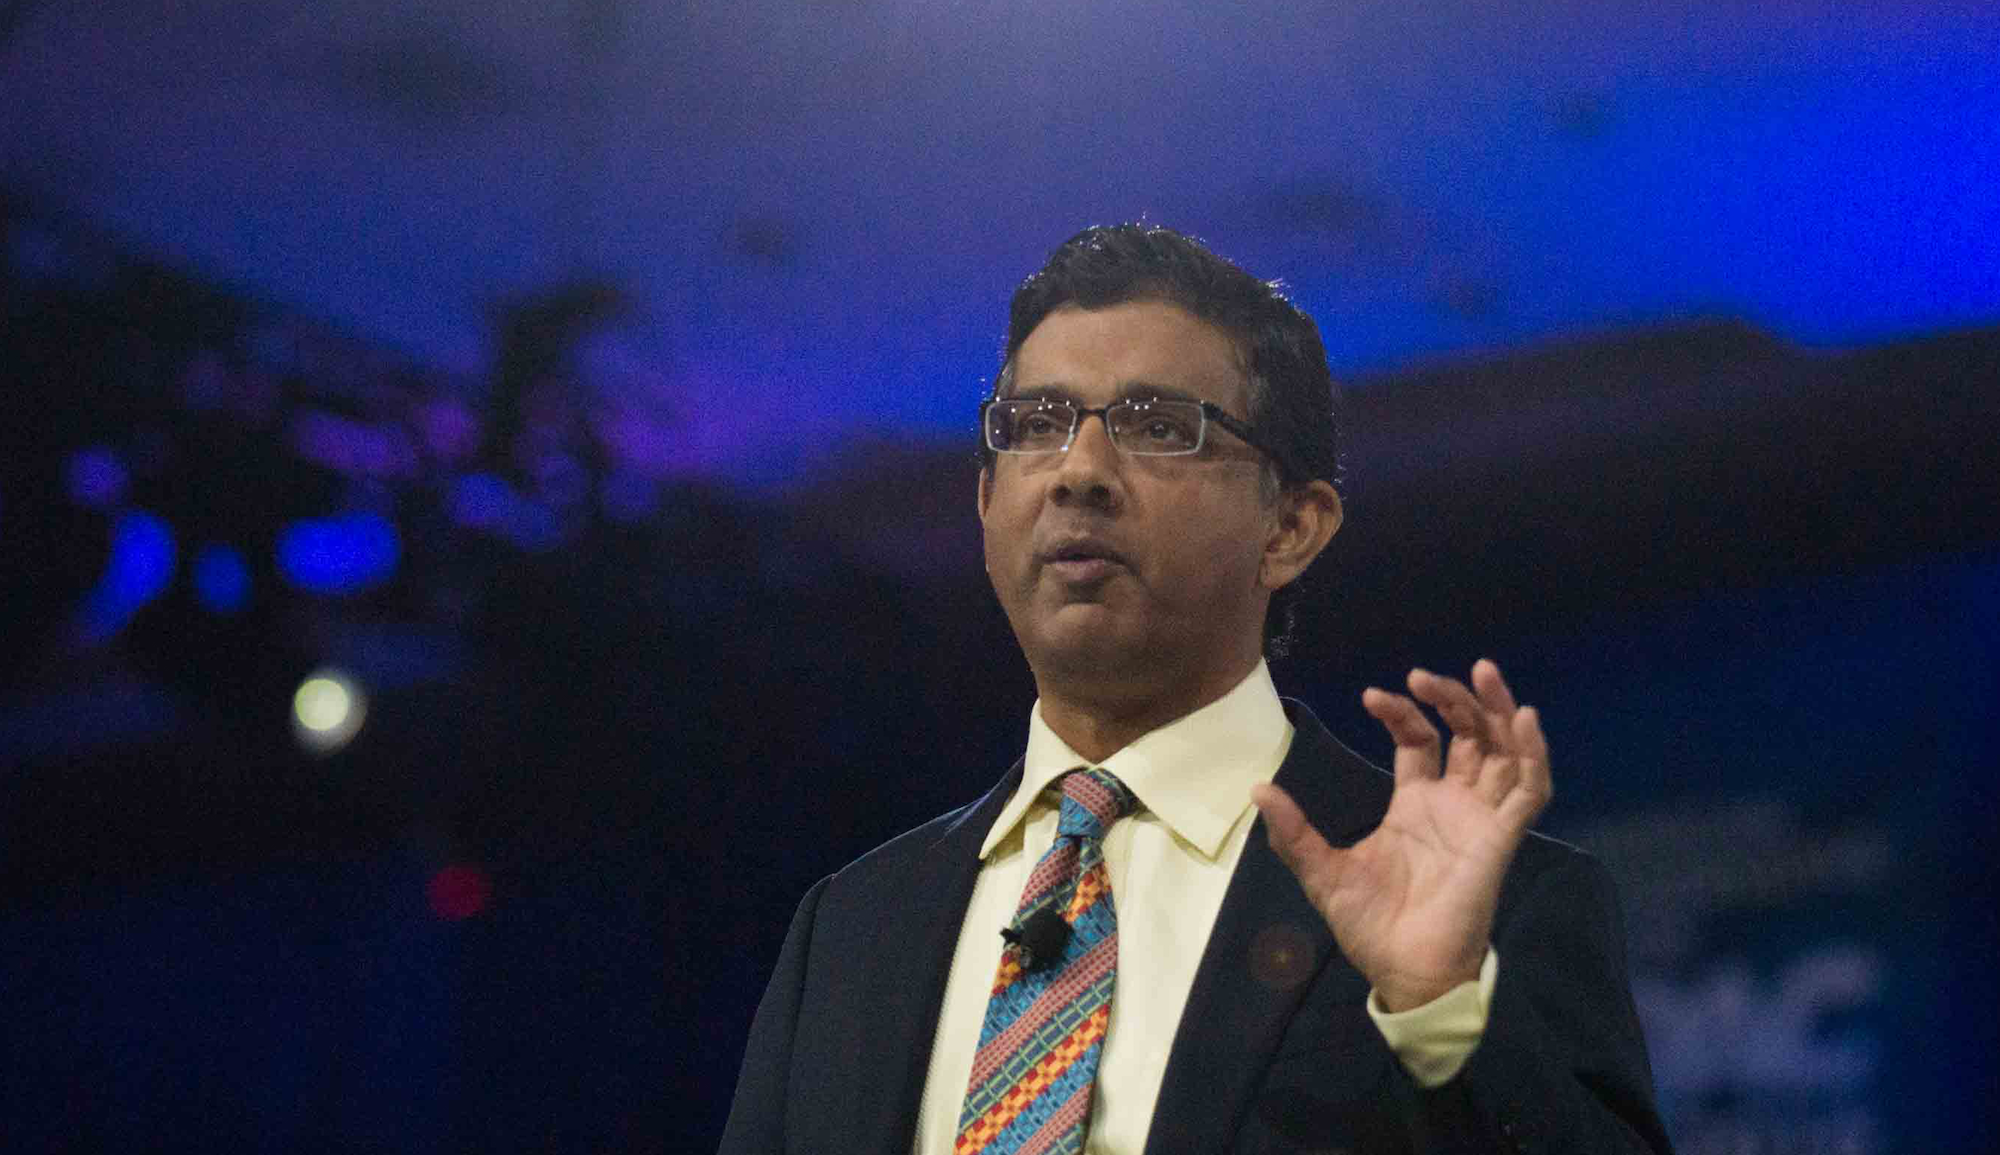 Trump Pardons Dinesh D'Souza, Who Pleaded Guilty To Campaign Finance Fraud